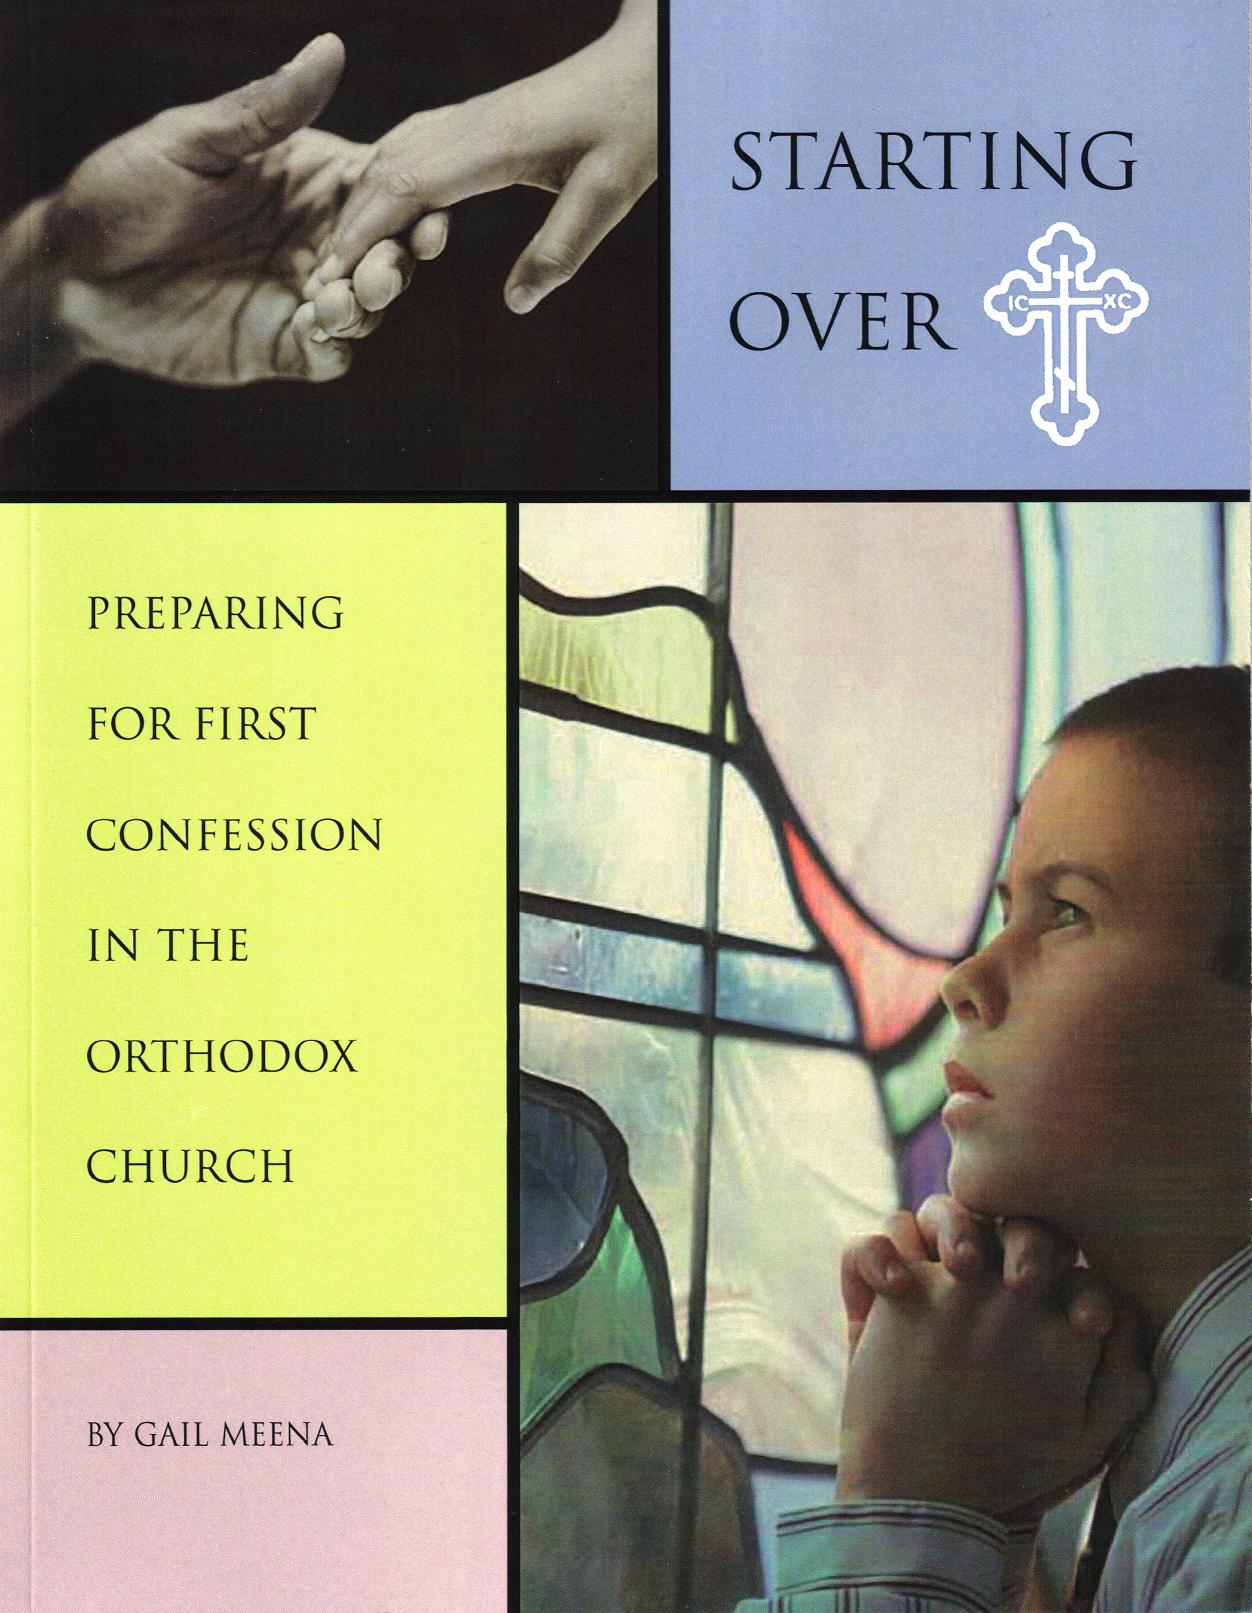 Starting Over: Preparing for First Confession in the Orthodox Church